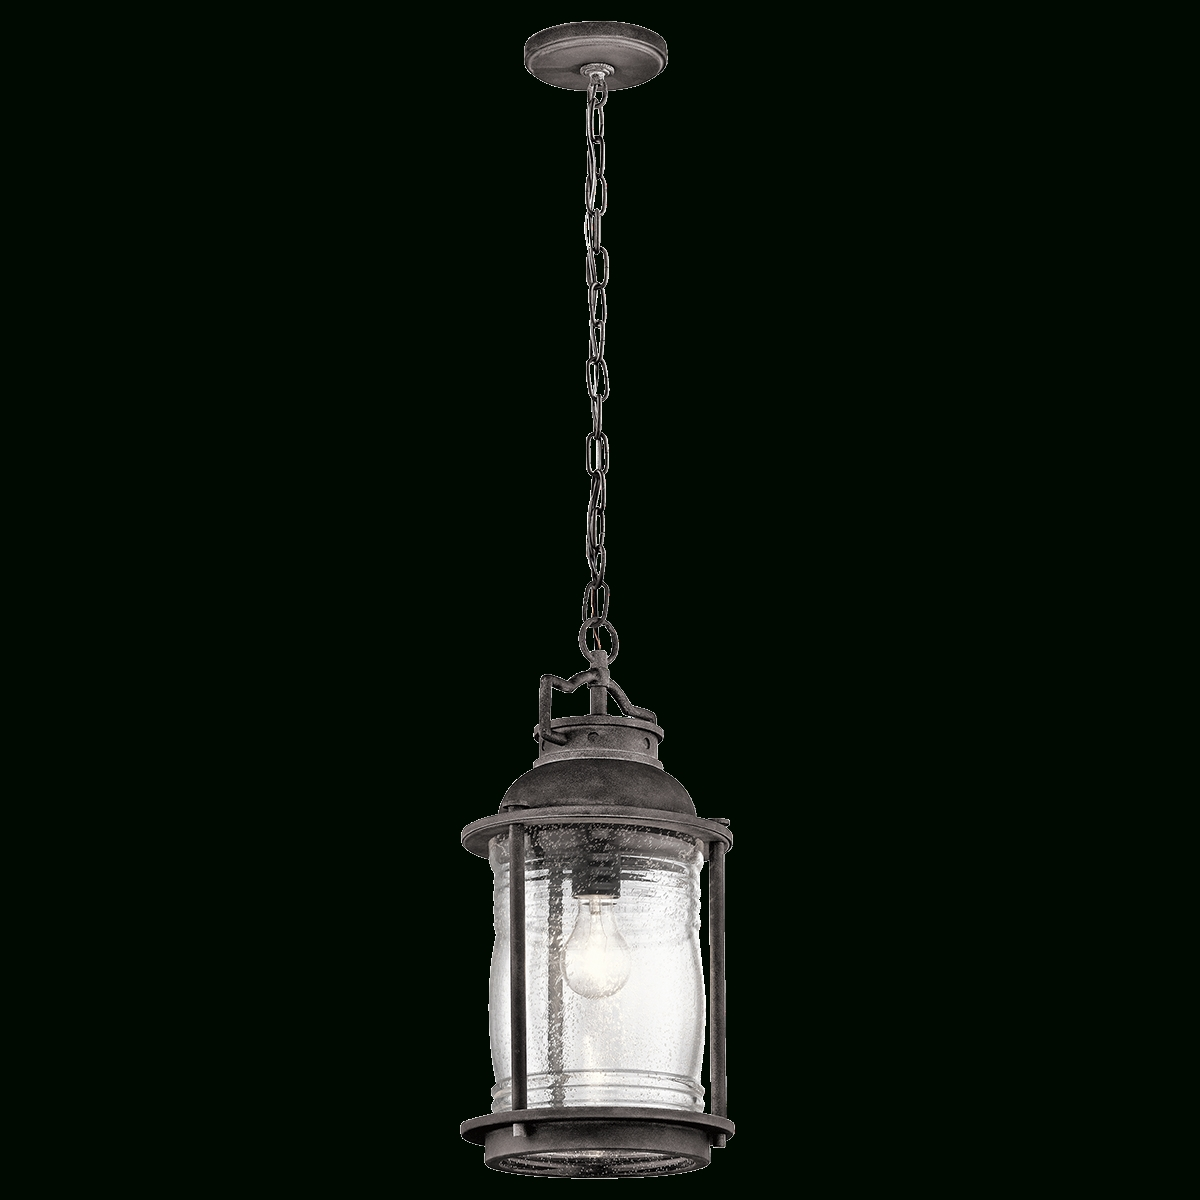 Ashland Bay 1 Light Outdoor Pendant – Wzc 49572Wzc Kichler For Outdoor Pendant Kichler Lighting (View 6 of 15)